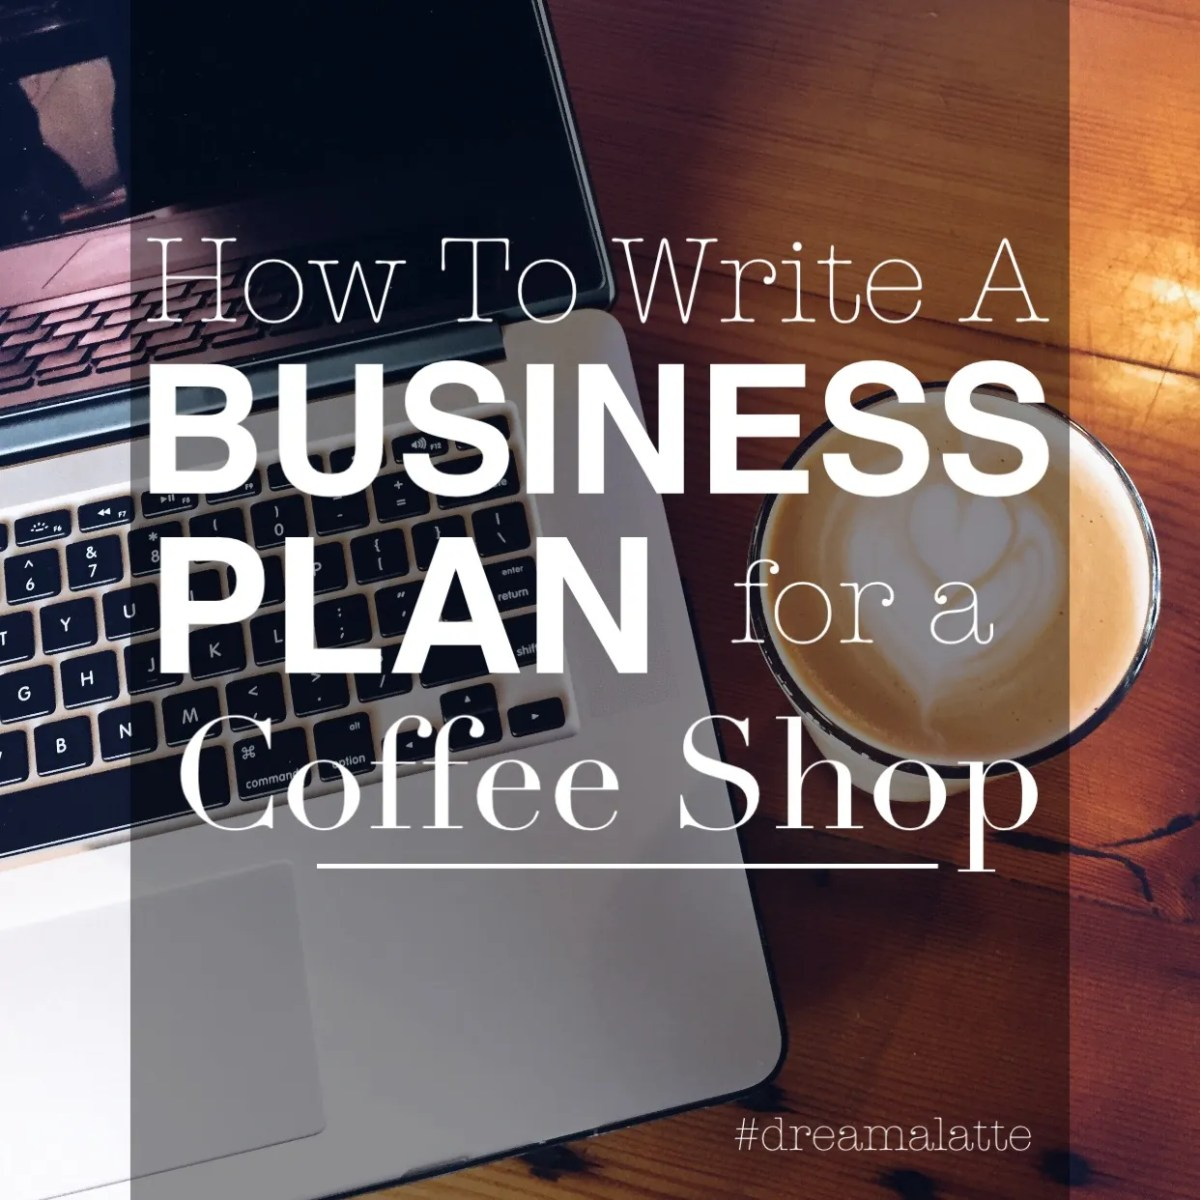 The Coffee Shop Business Plan